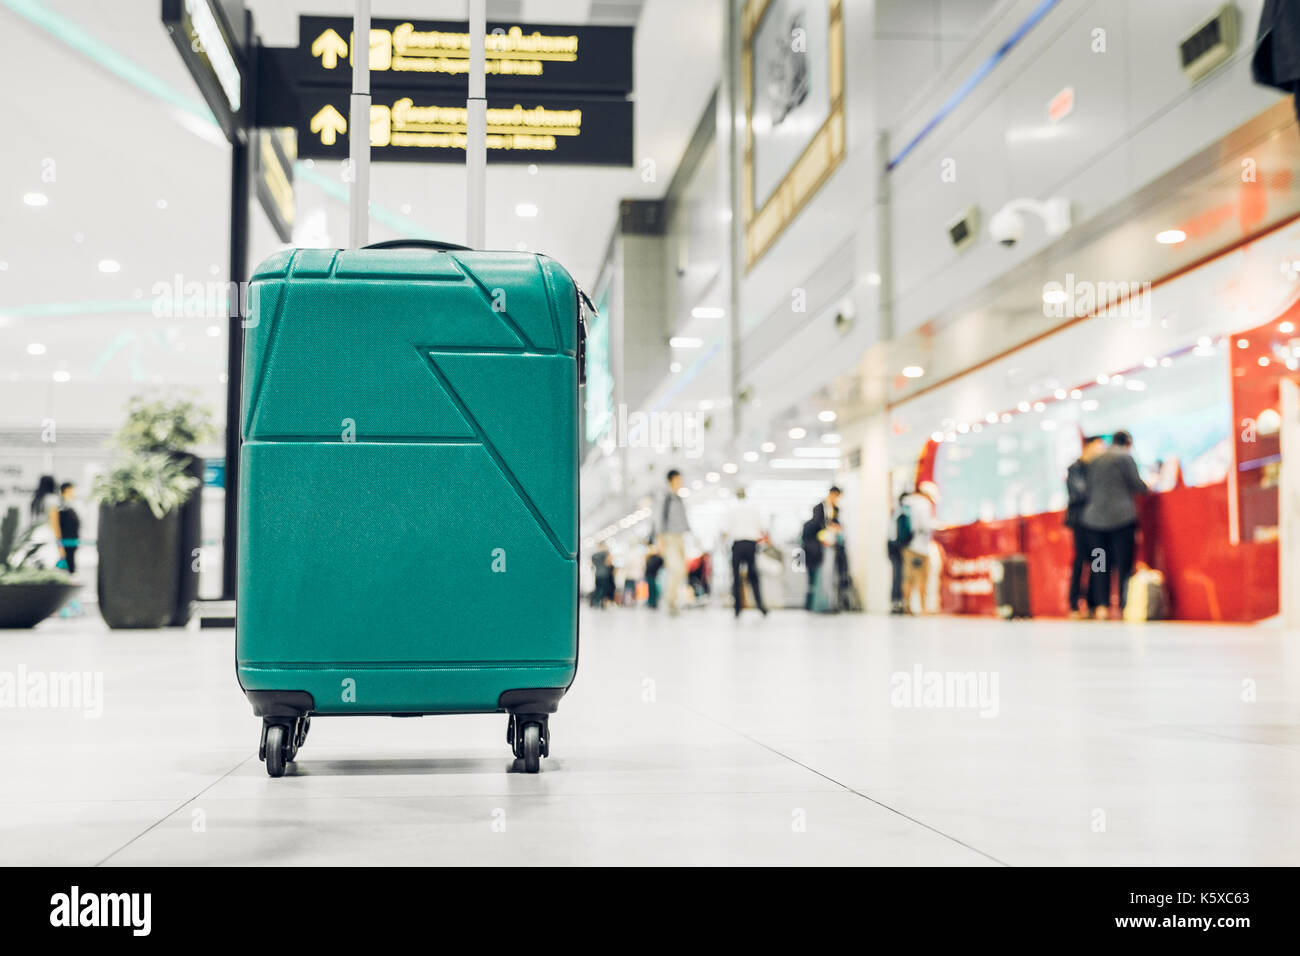 Suitcases in airport departure terminal with traveler people walking in background,Holiday vacation concept, Business trip,selective focus on suitcase - Stock Image